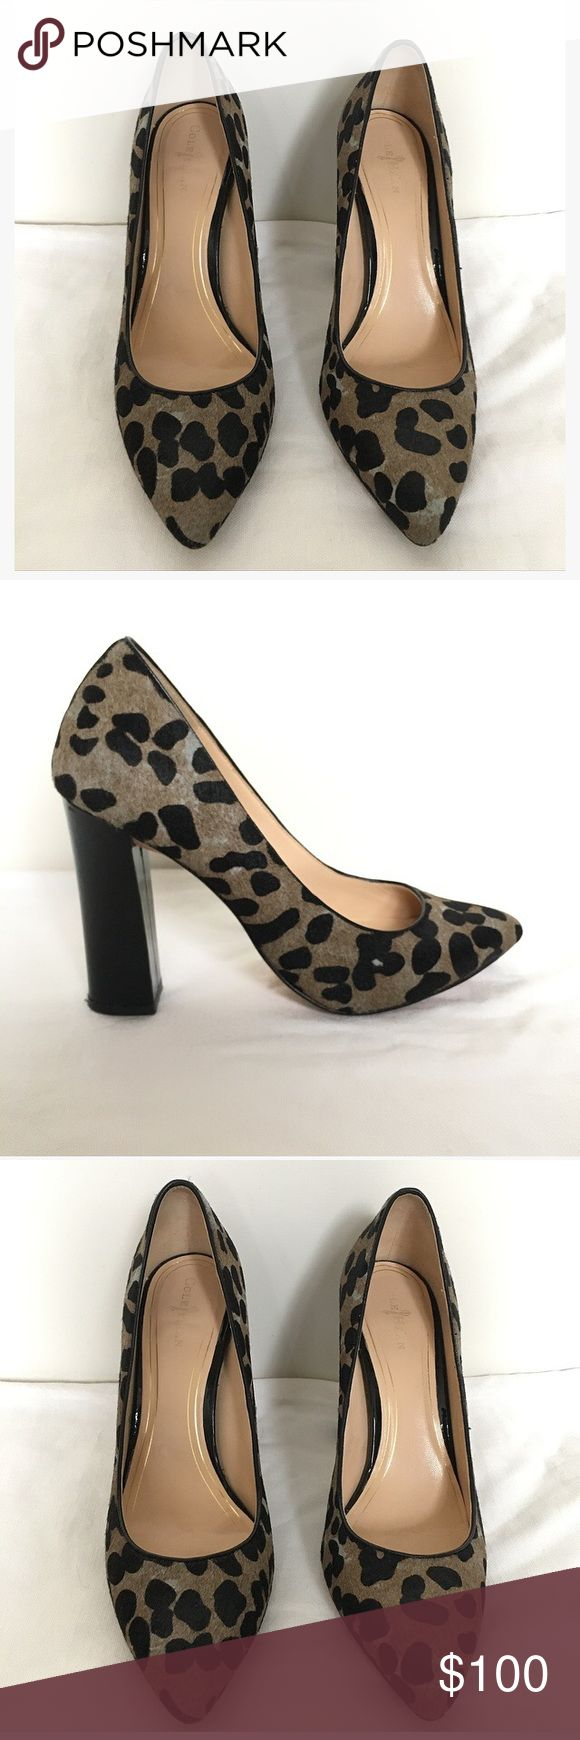 """Cole Haan Pony Hair Spotted Pumps Fall 2013 Cole Haan (NikeAir) pointed toe, pony hair, spotted pump with black patent block heel. Worn on only a few occasions with tights. Heel height 4"""". Cole Haan Shoes Heels"""